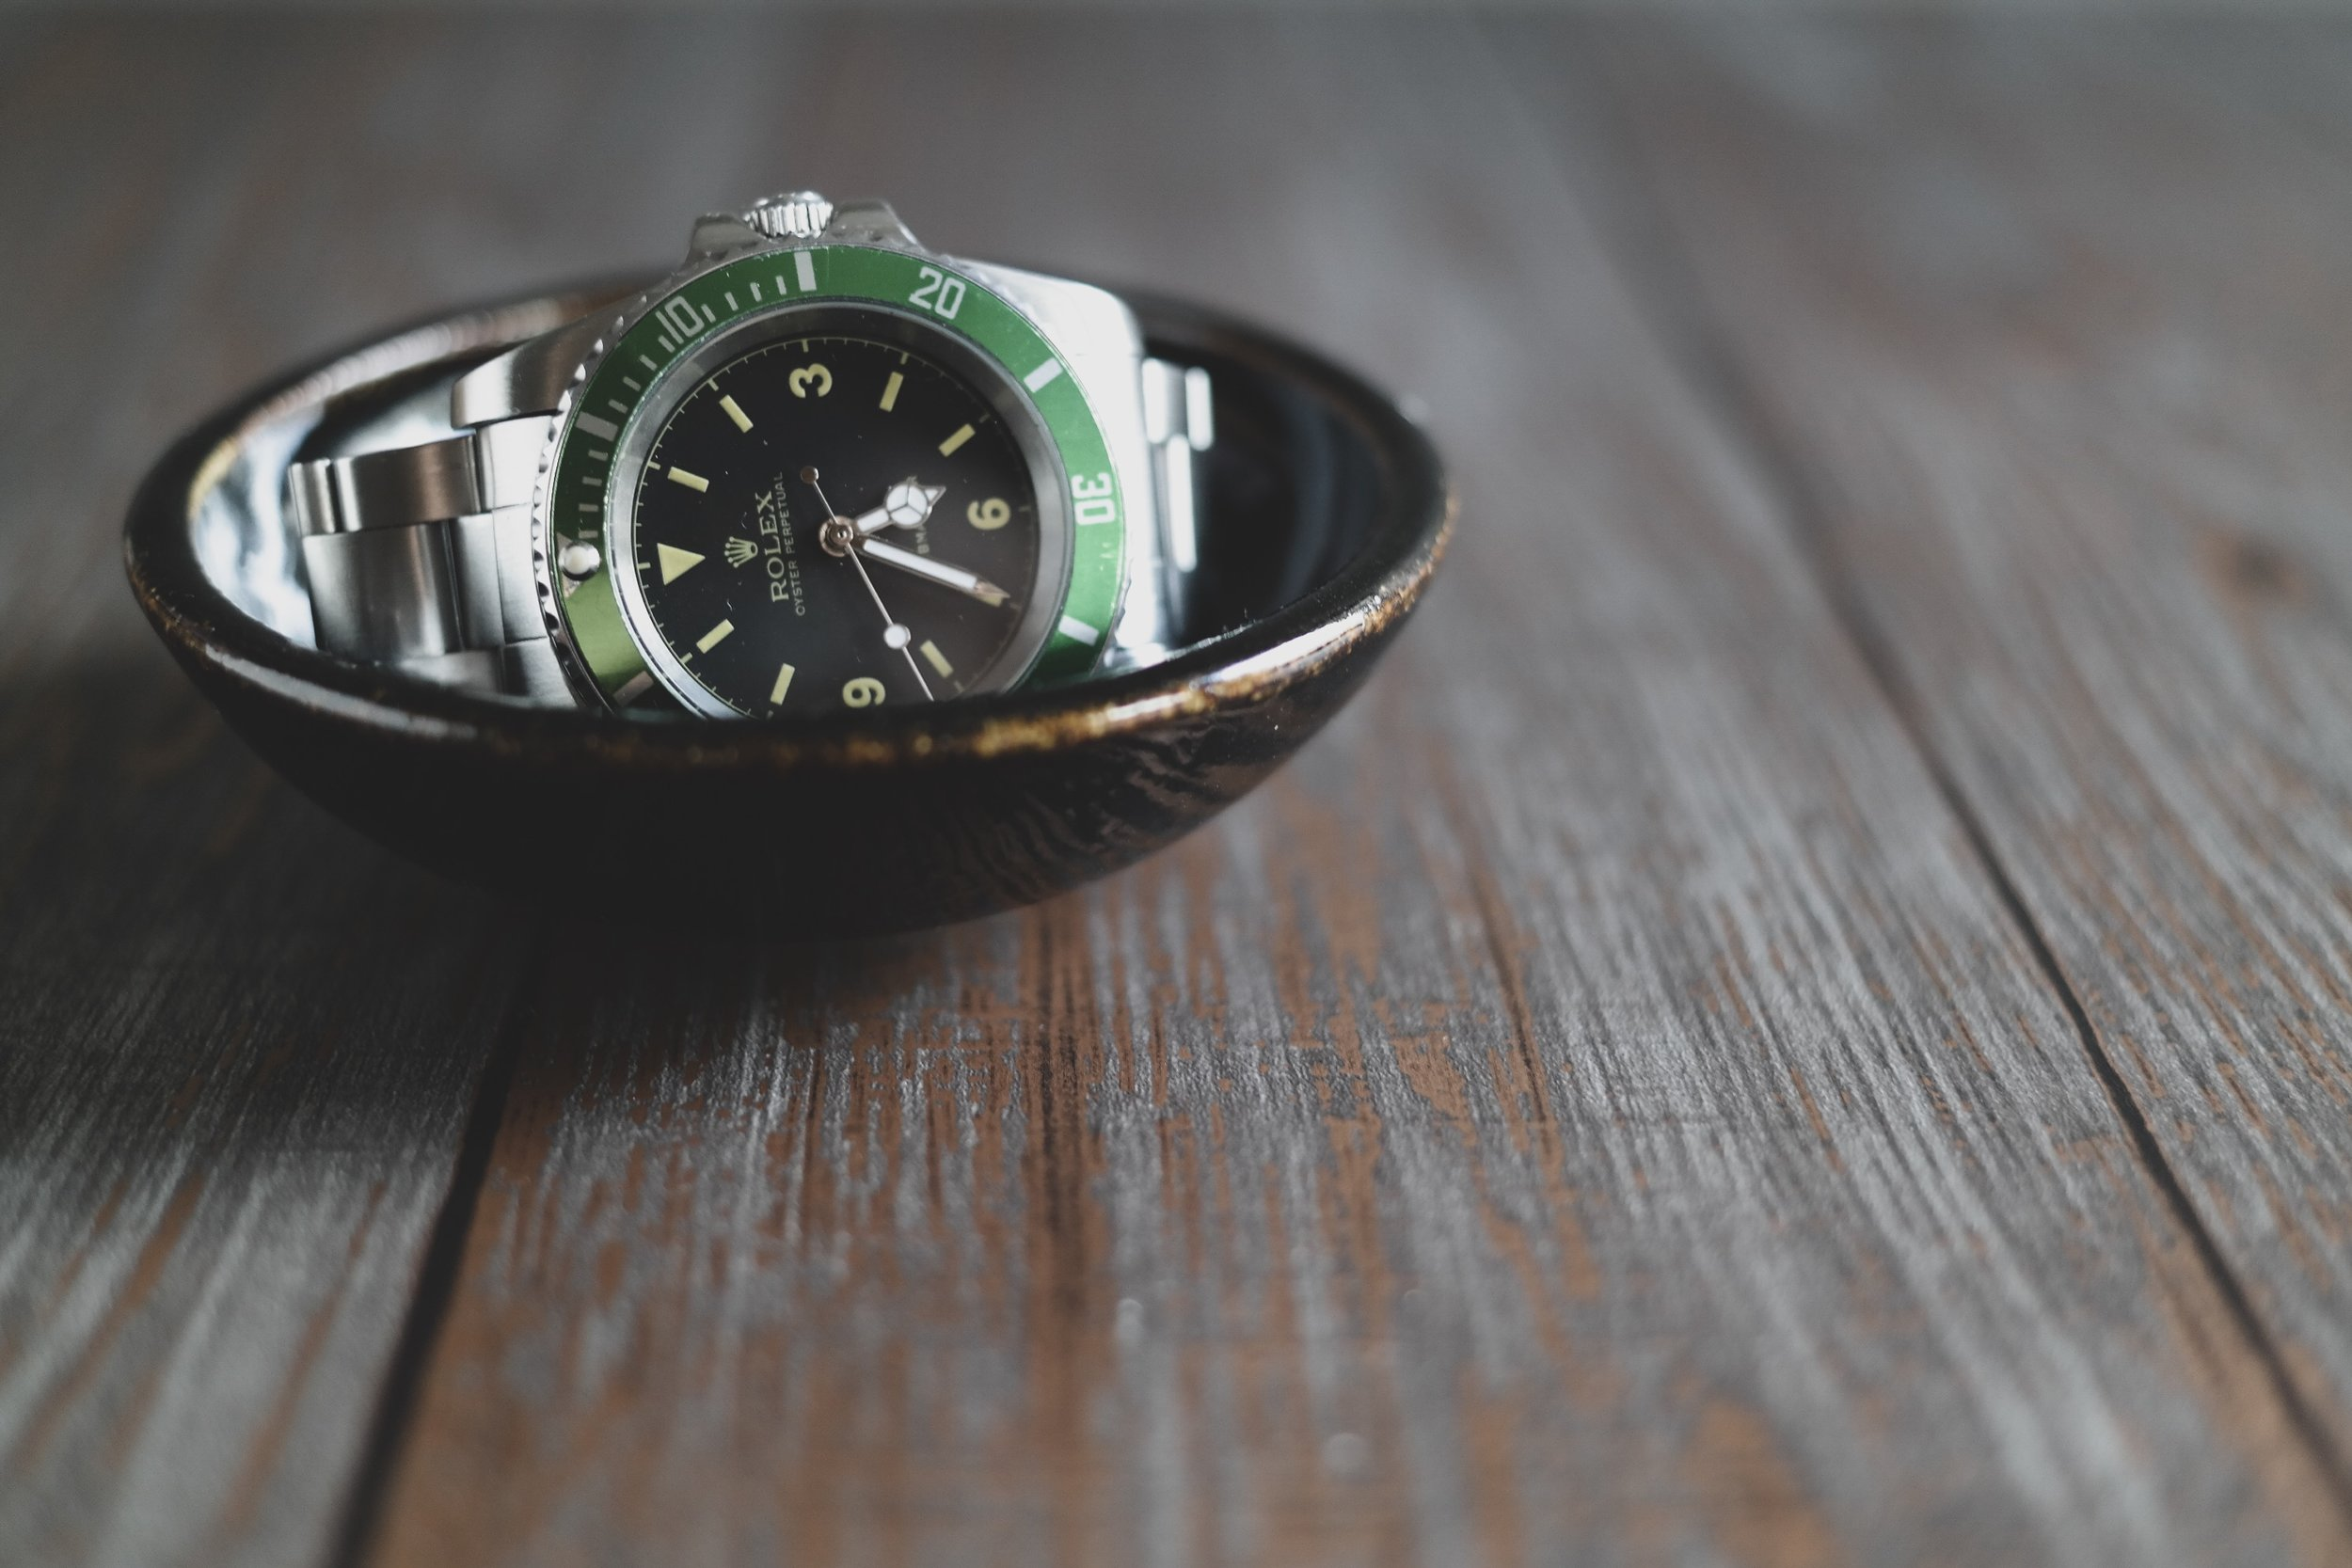 My Rolex Kermit Submariner in handmade bowl by @jonthepotter. Shot by me on Samsung NX300.